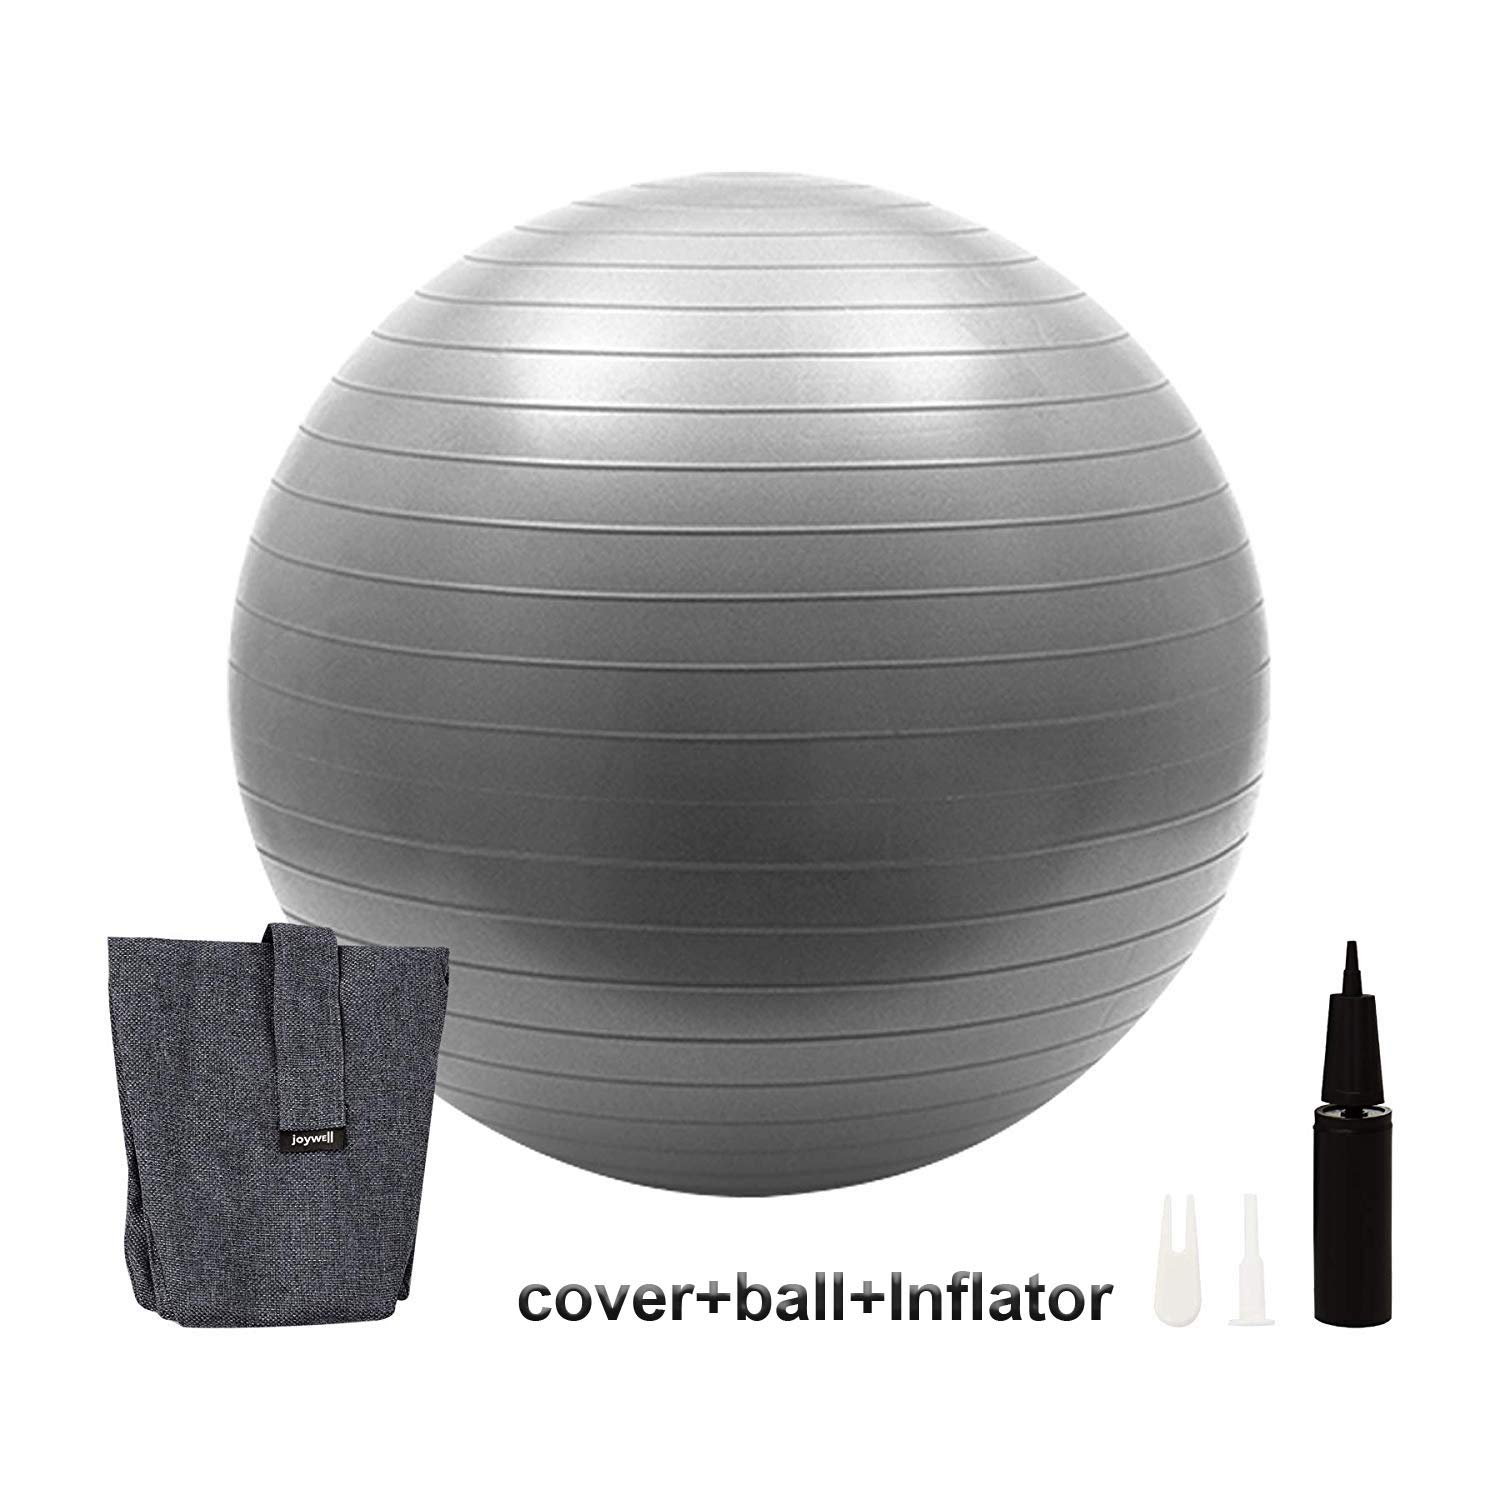 Joywell -Sitting Ball Chair with Handle for Home, Office, Pilates, Yoga, Stability and Fitness - Includes Exercise Ball with Pump Multi Function Foldable Storage Bag Laundry Hamper (65CM,Gray)